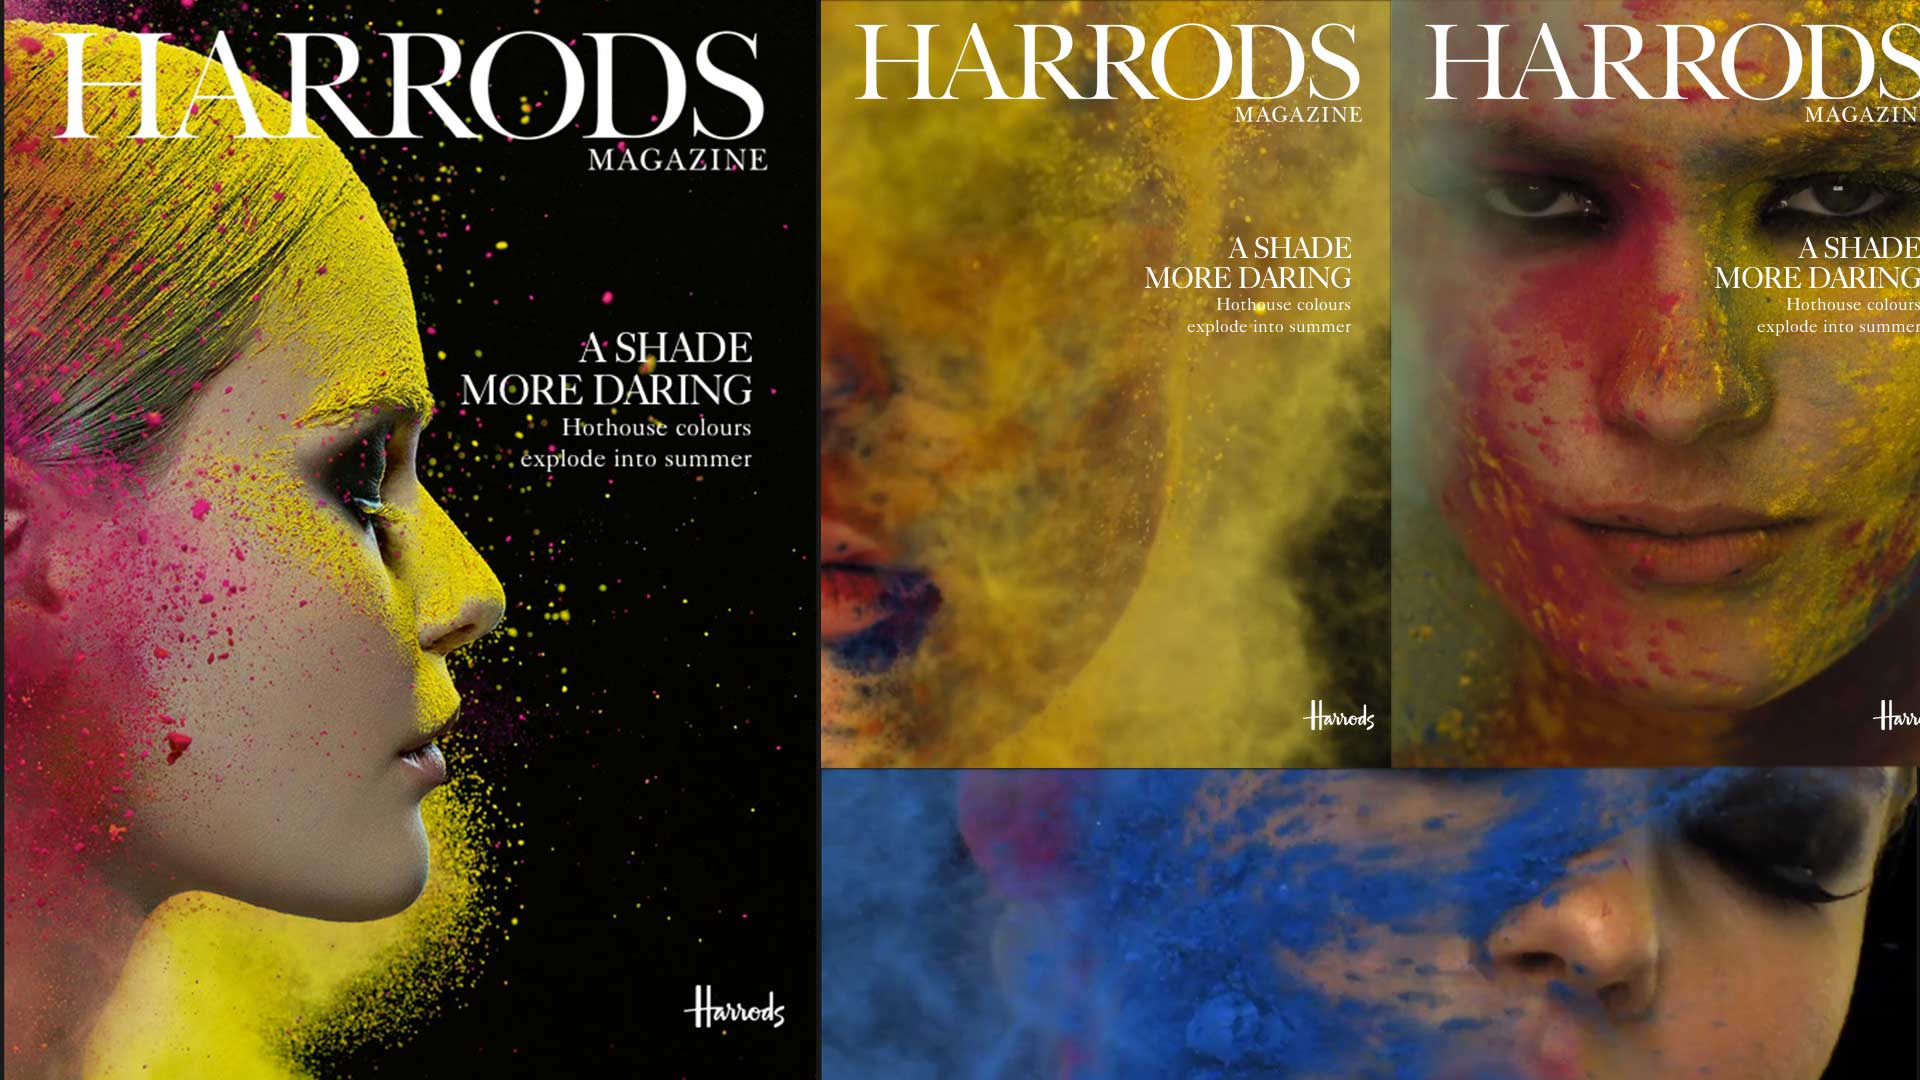 Harrods Magazine Sound Design